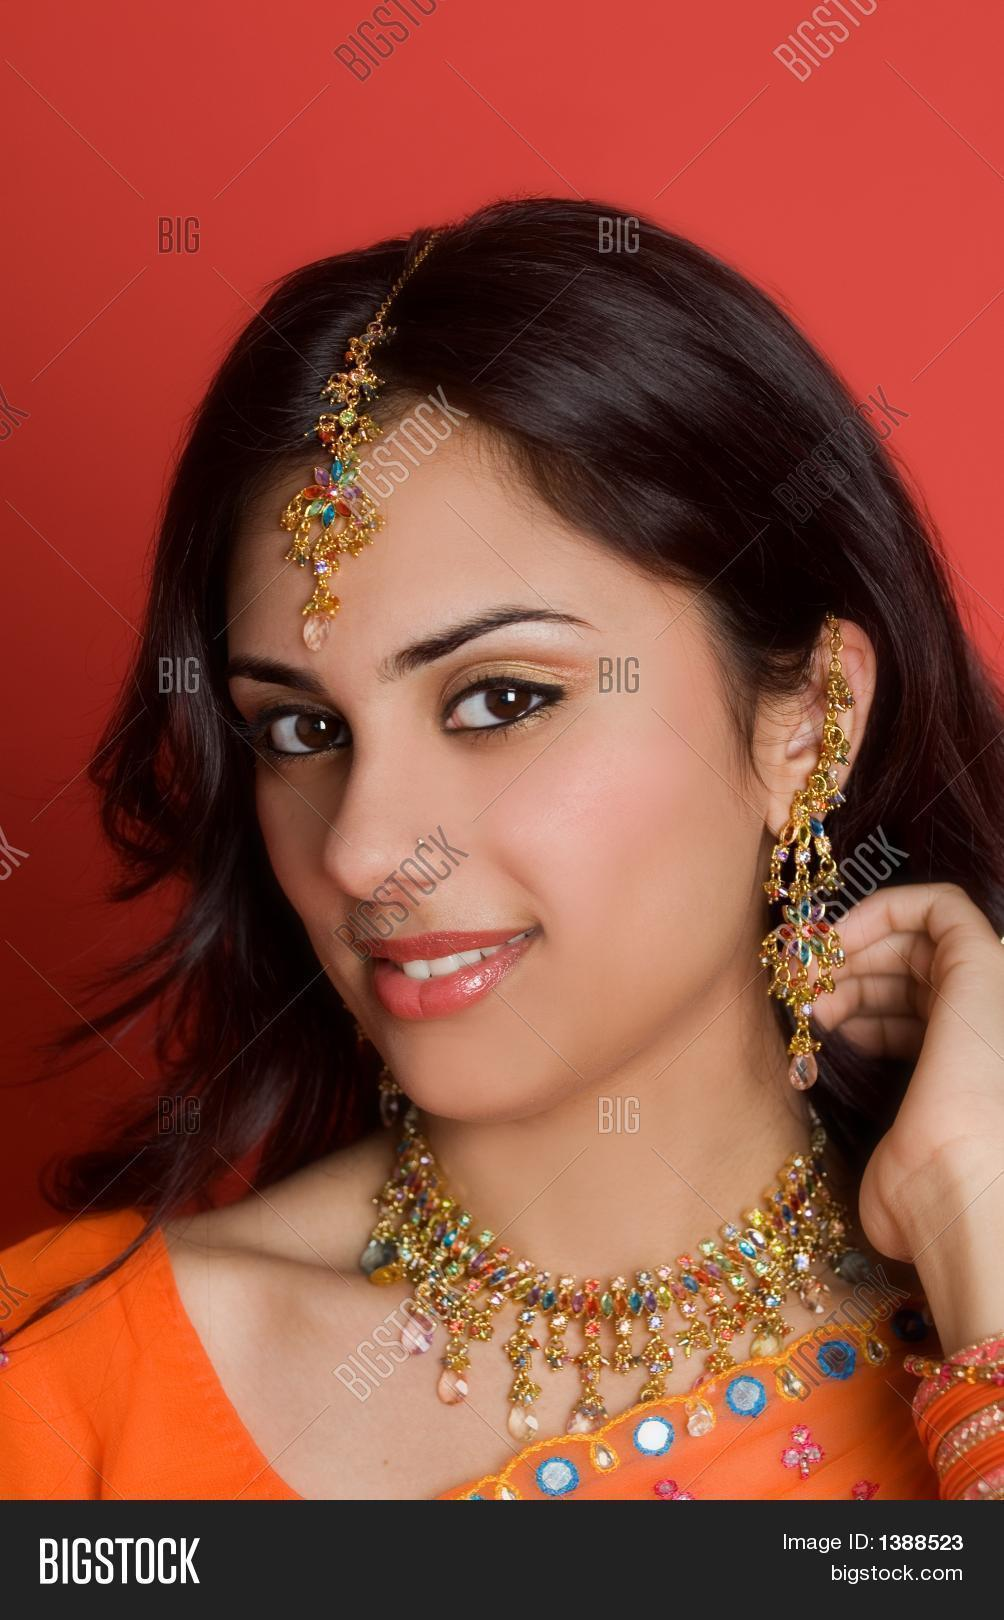 elbing hindu single women Meet indian singles that are looking for romance, friendship and fun online register with our brand new dating site and start interacting with hot indians, meet indian singles.